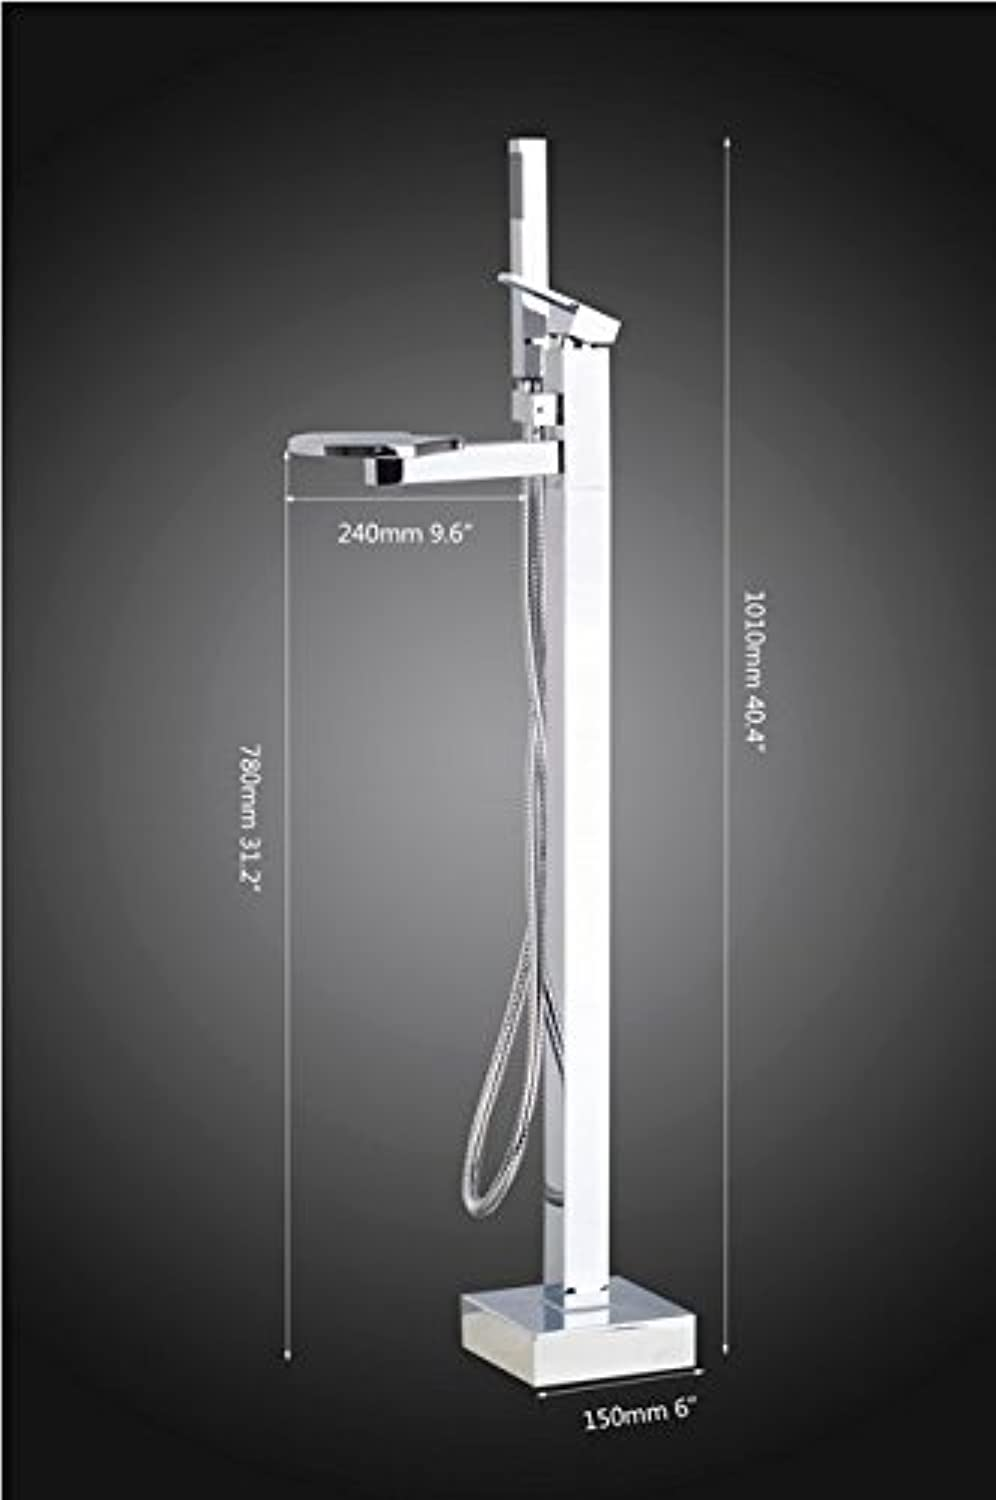 GOWE Bathtub Faucet Torneira Modern Single Handle Solid Brass Floor Standing Tub Shower Faucet +Hand Shower Mixers Taps